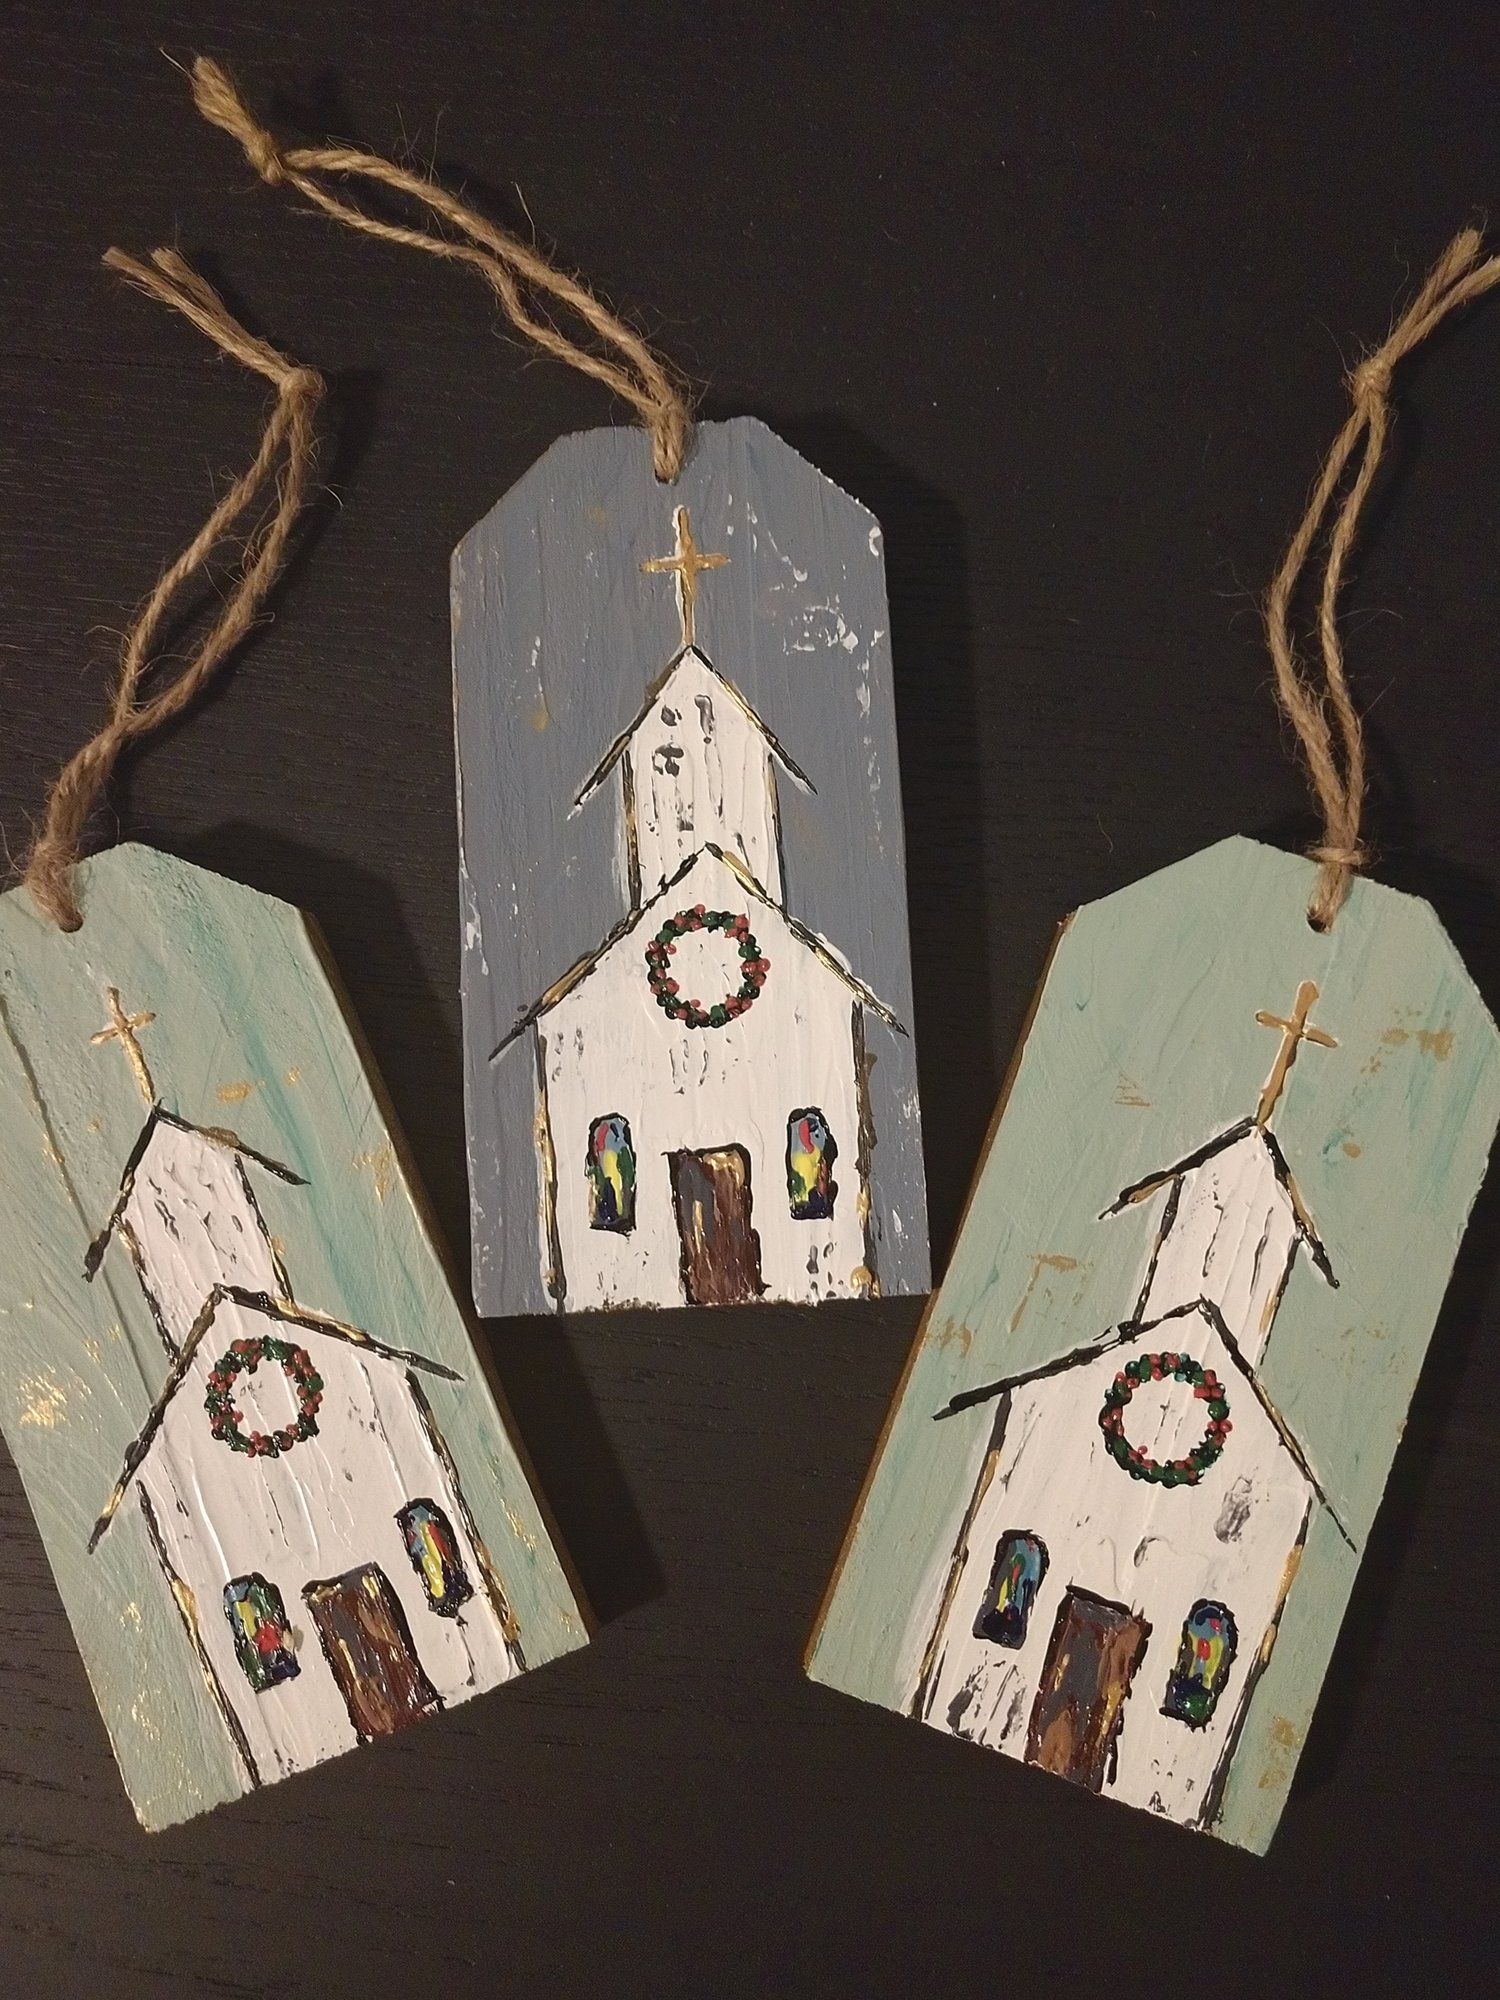 Lynn Sherrill and Samantha Avant, a mother and daughter working together as Southern Somethings, will have their handcrafted wooden items on sale at Art in the House.